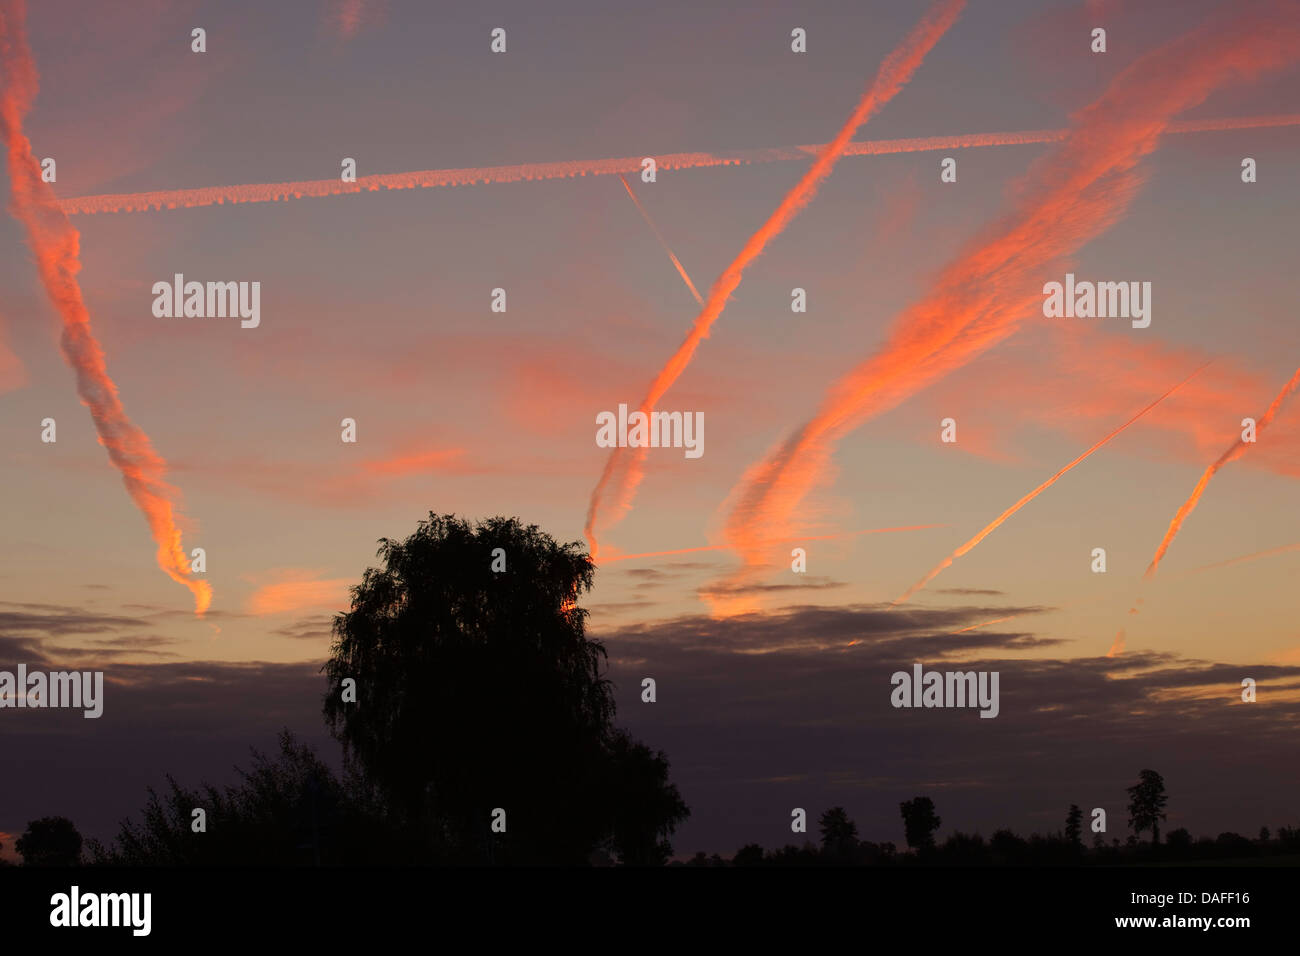 condensation trails in the sky in morning light, Germany - Stock Image